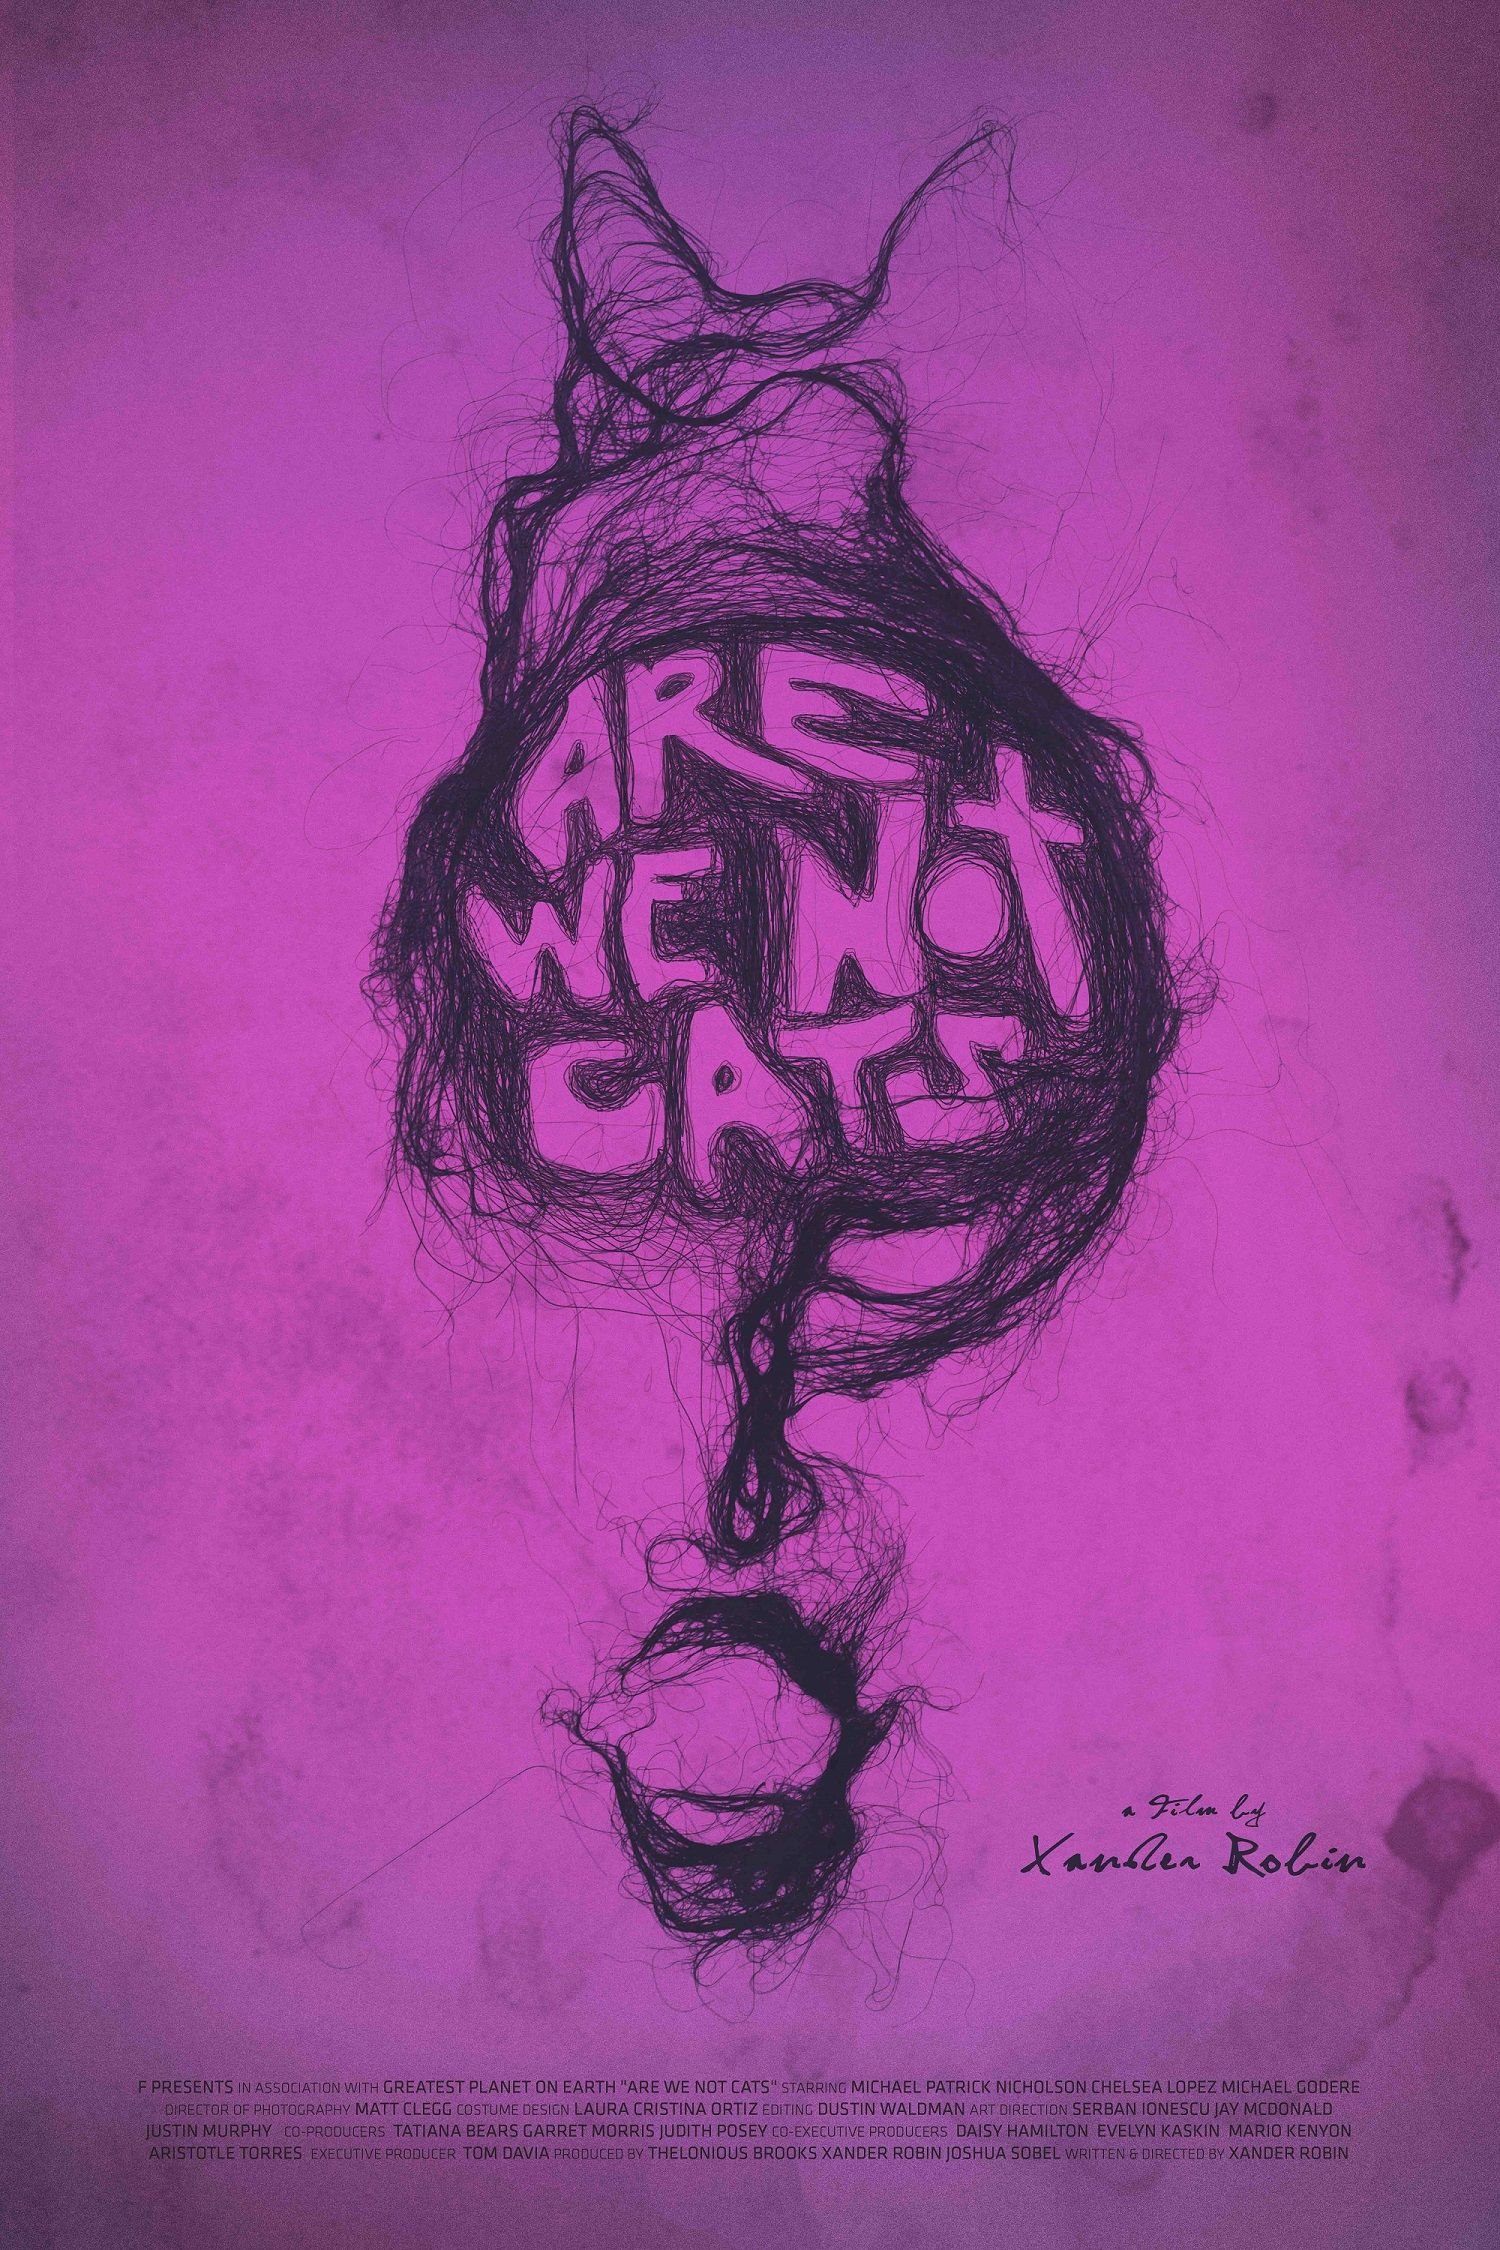 Things get hairy in the Are We Not Cats trailer Live for